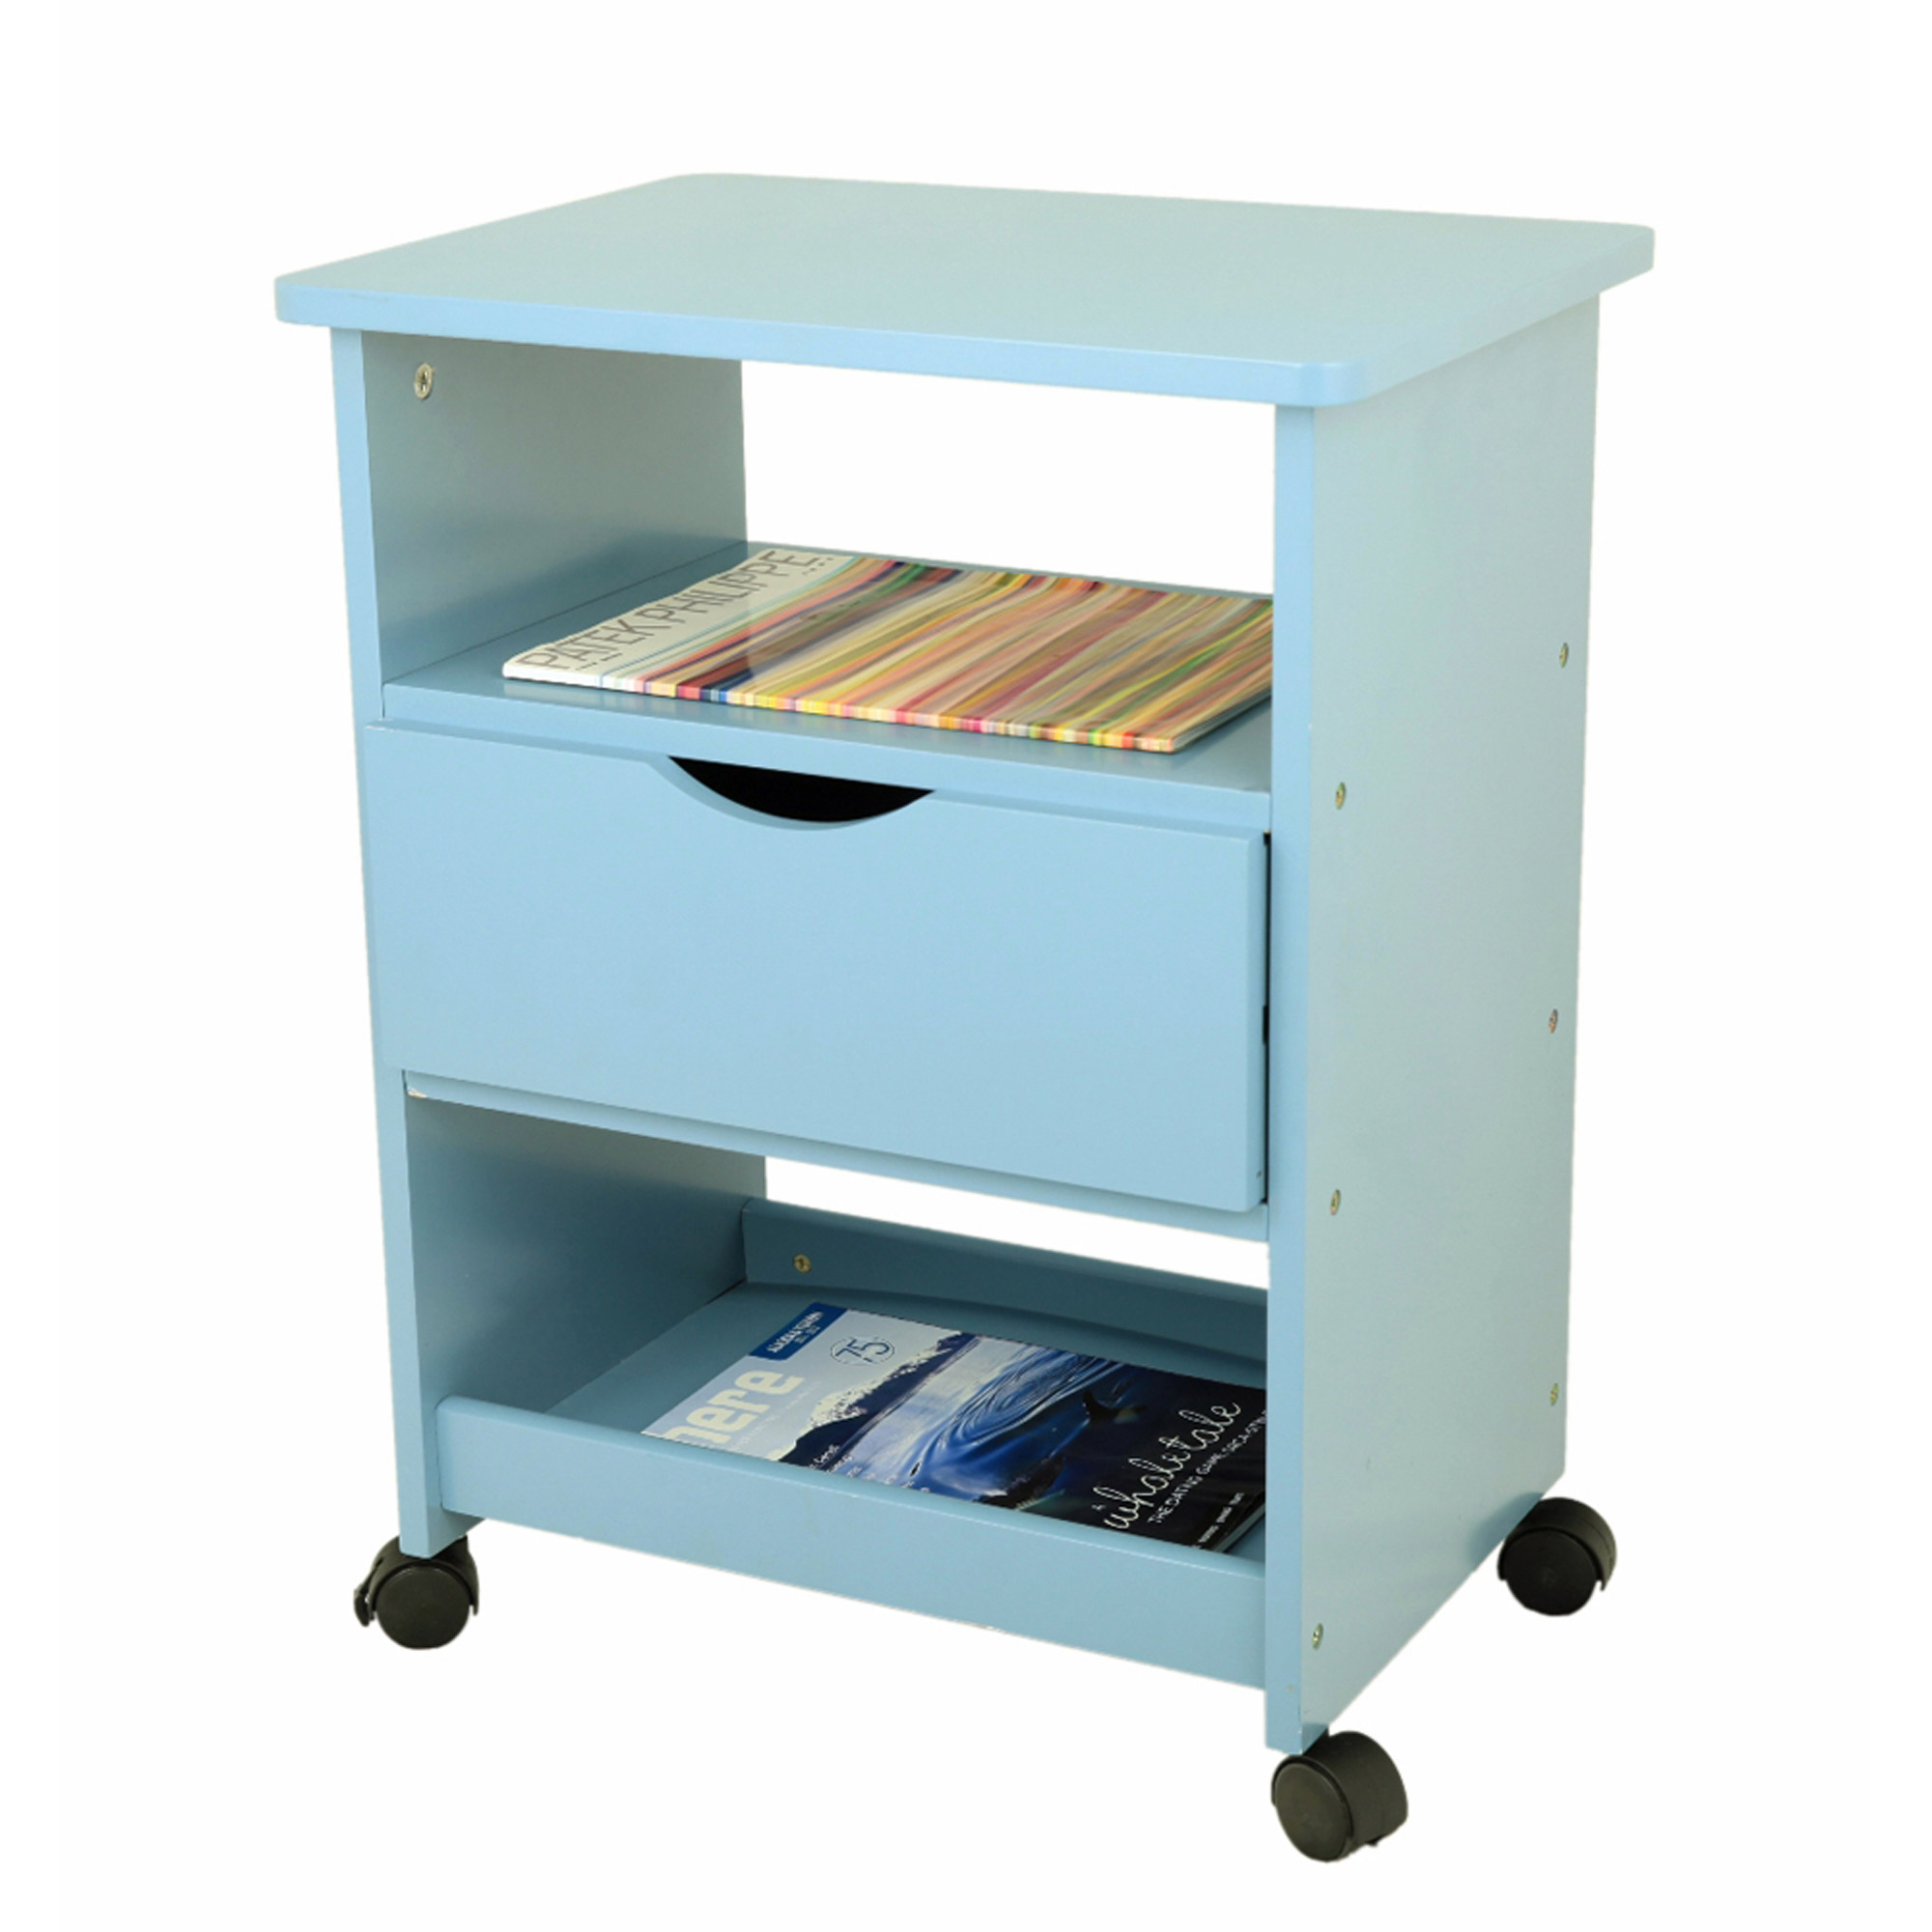 Home Craft Rolling Cart with Drawer, Multiple Colors - Walmart.com